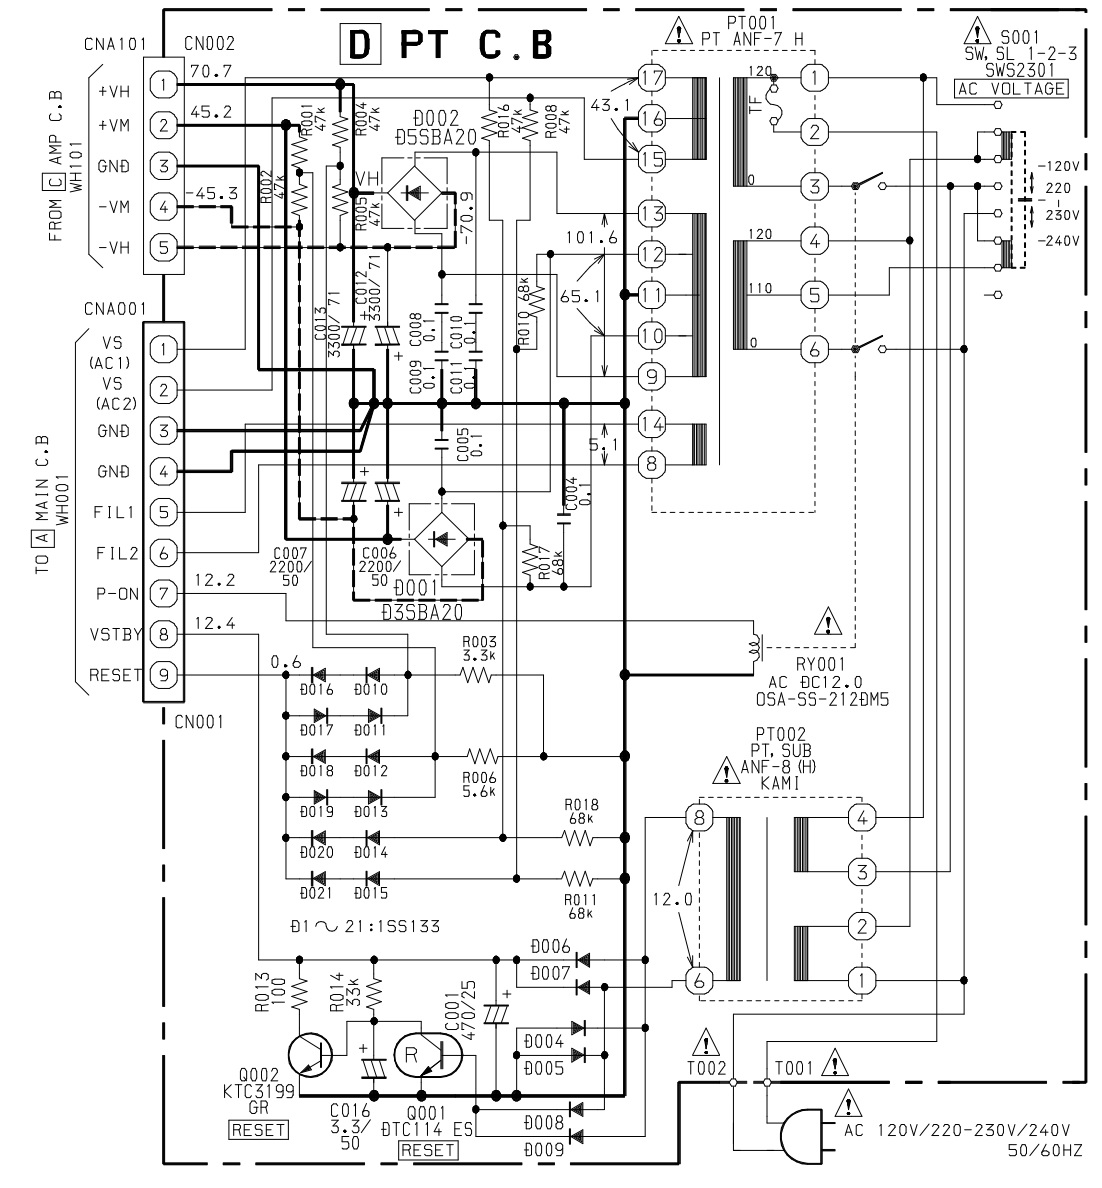 2003 Acura Cl Seat Wiring Diagram Schematic Not Lossing 2005 Rl Fuse Box Imageresizertool Com Hyundai Santa Fe Mercury